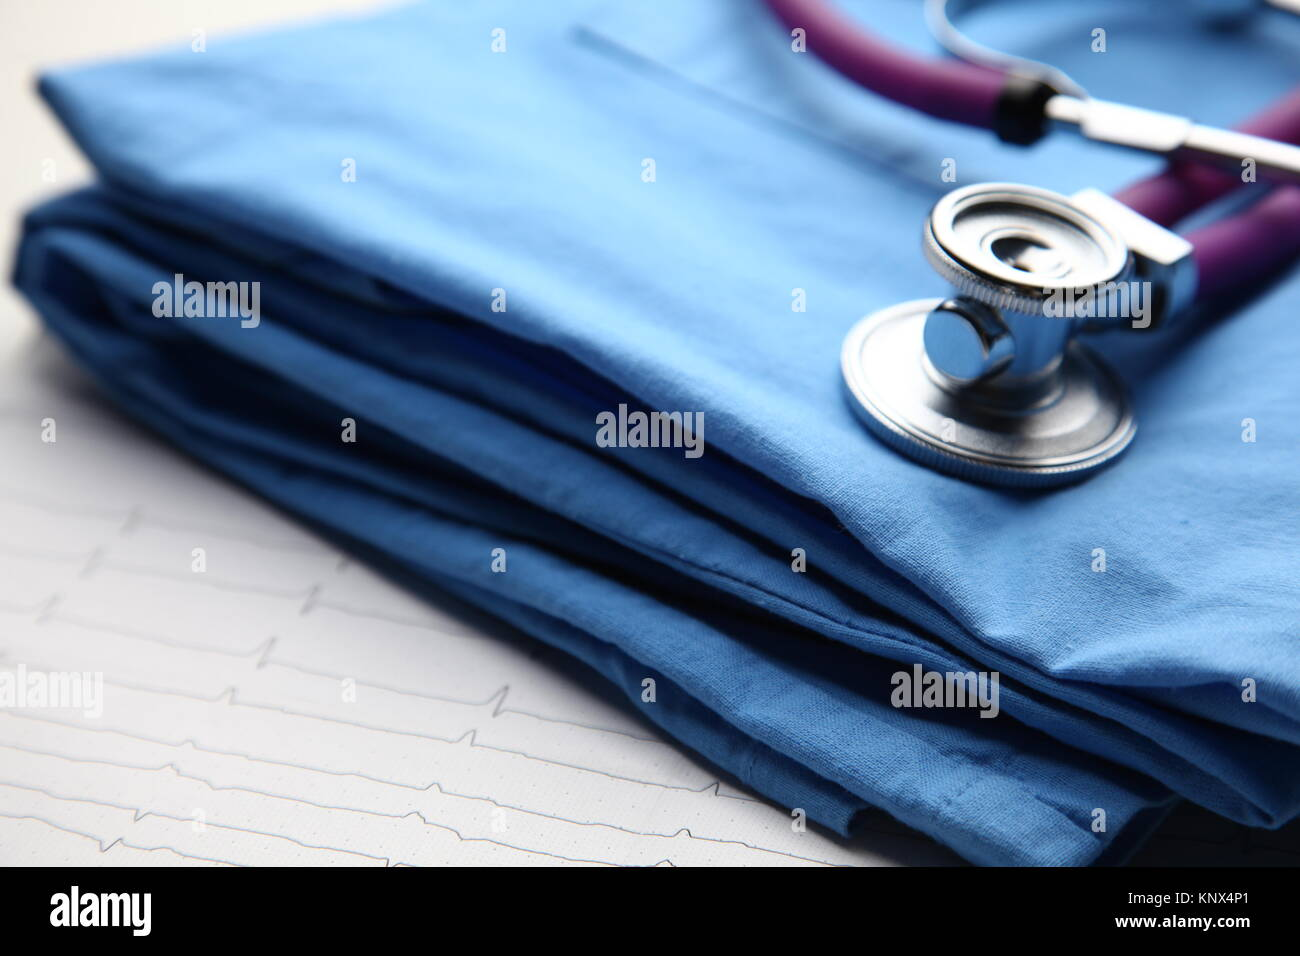 Doctor coat with medical stethoscope on the desk - Stock Image